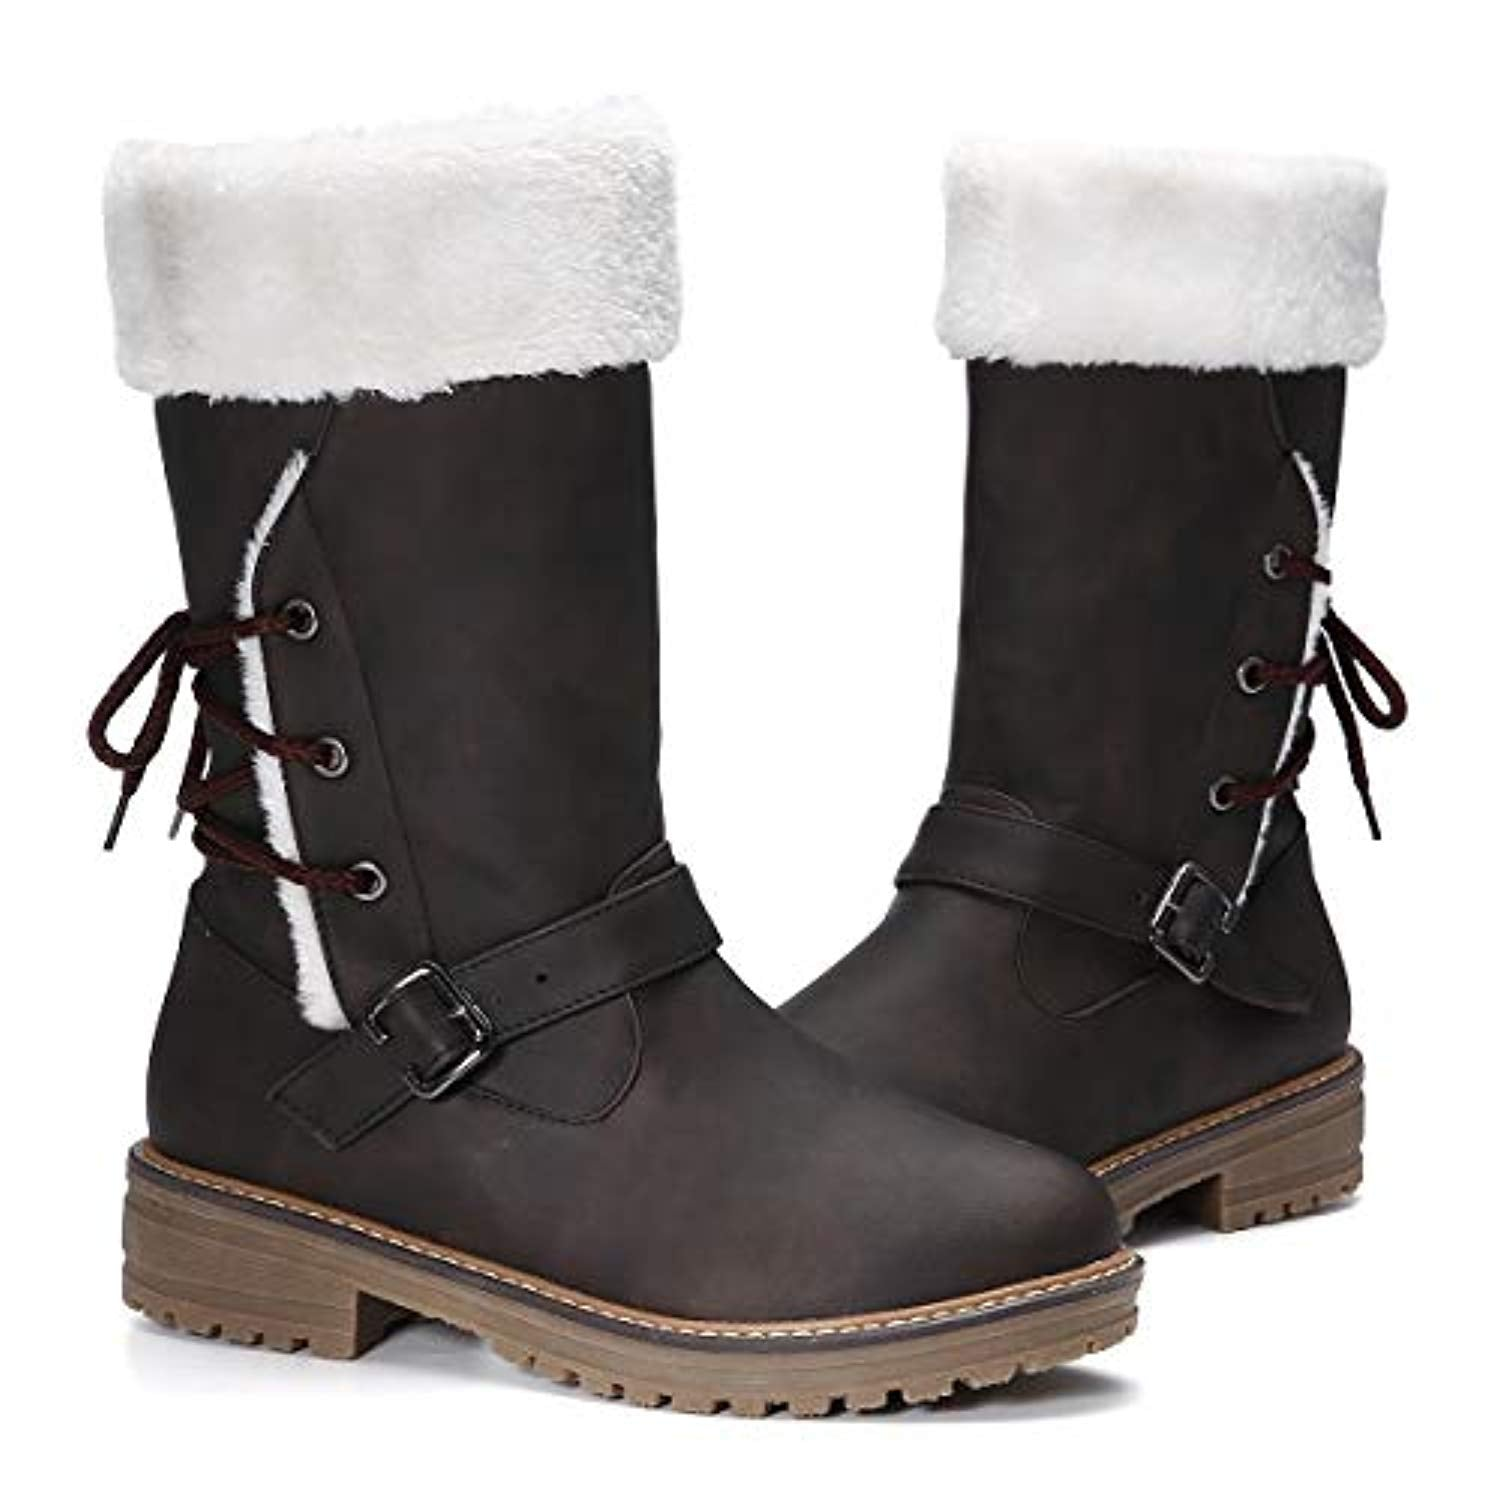 28c5e3e62d0ee gracosy Women's Snow Boots, Leather Ankle Bootie Warm Flat Fur Lined Boot  Winter Outdoor Mid Calf Boots Lace up Slip on